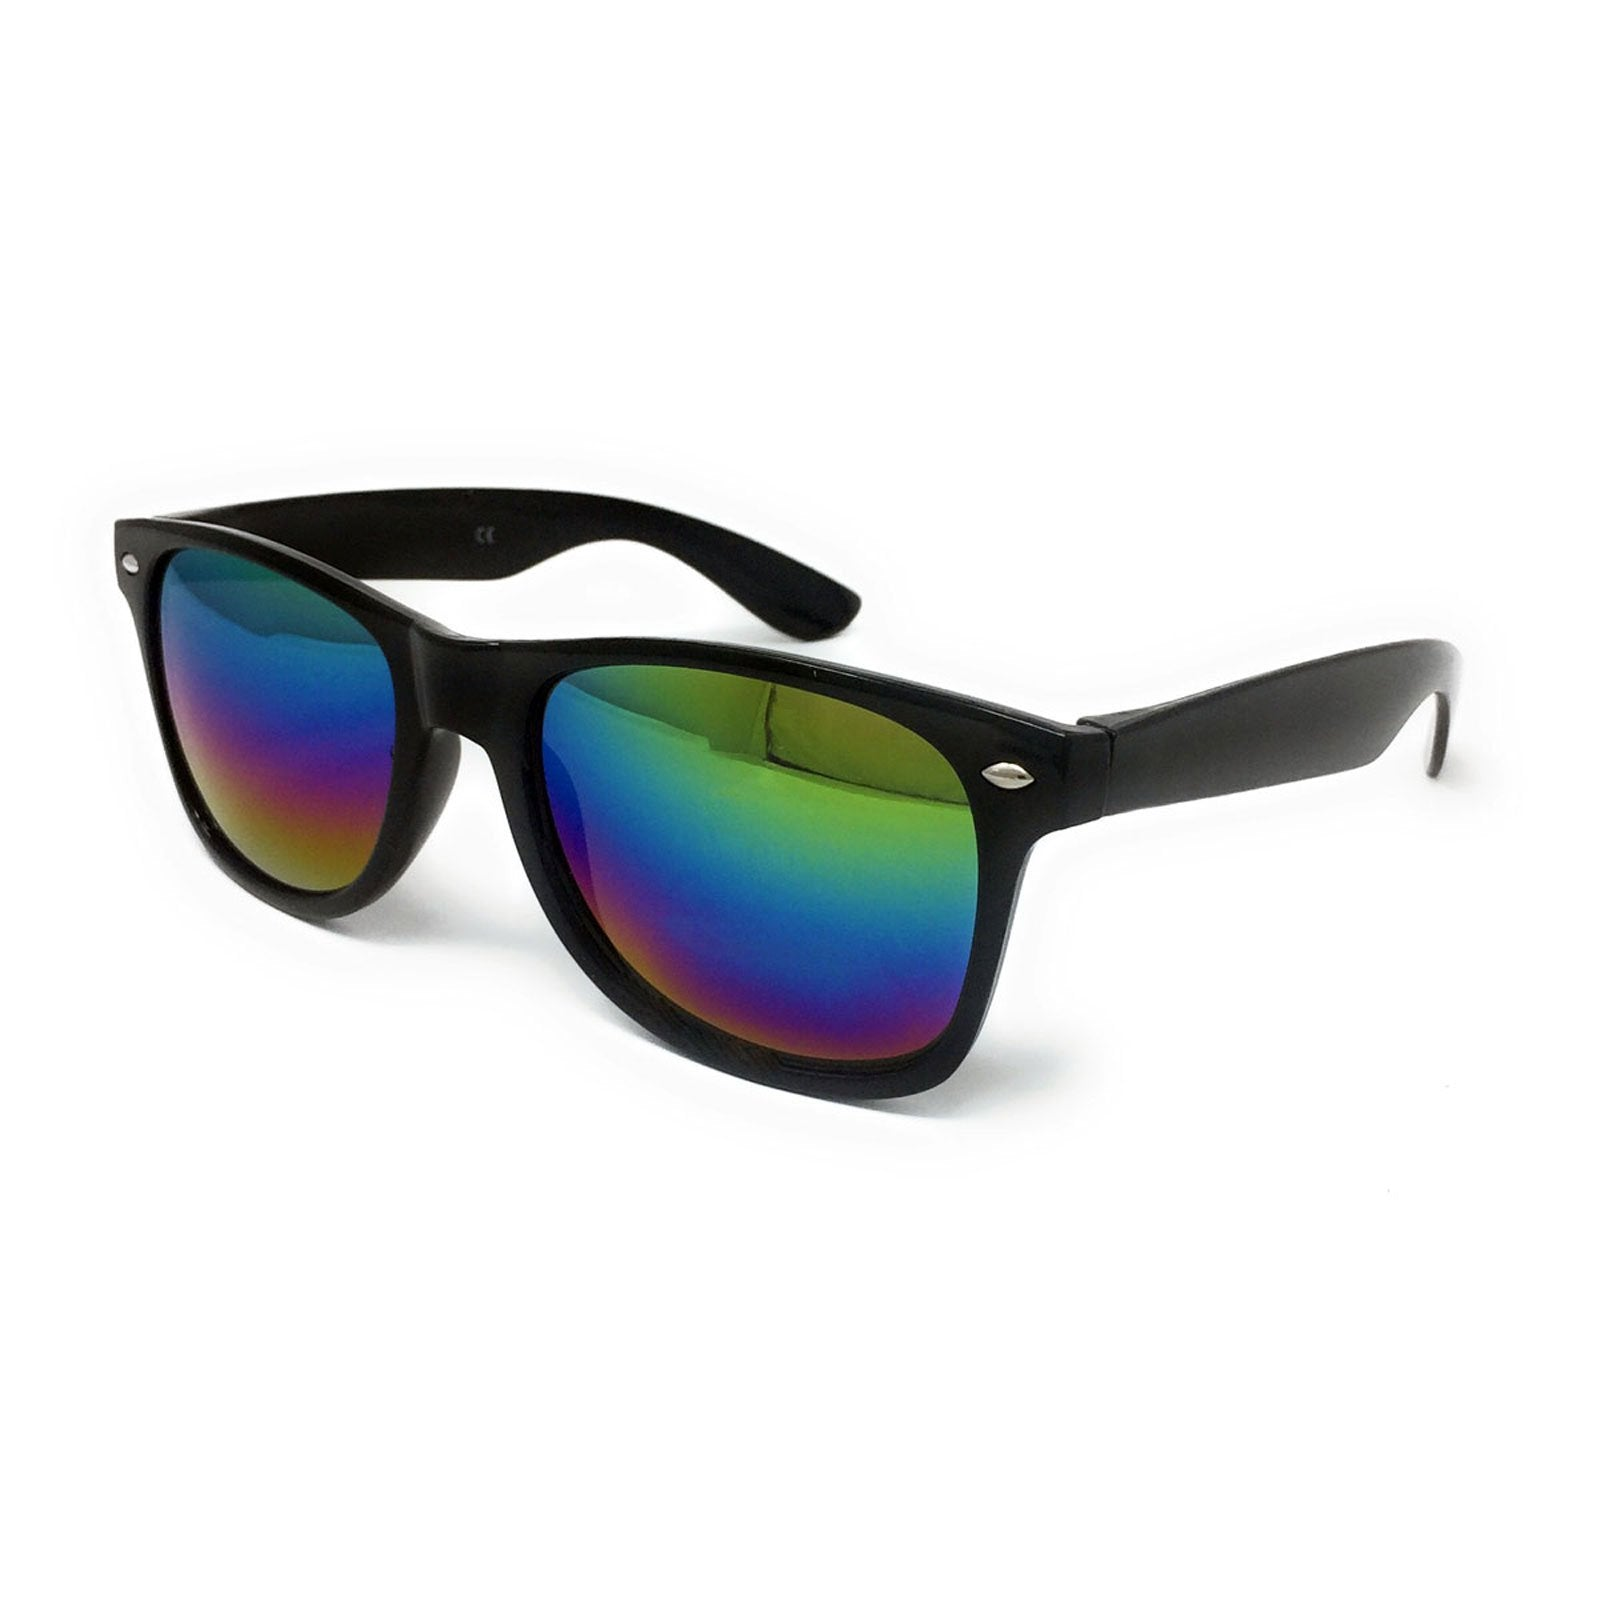 Wholesale Kids Classic Sunglasses - Black Frame, Rainbow Mirrored Lens